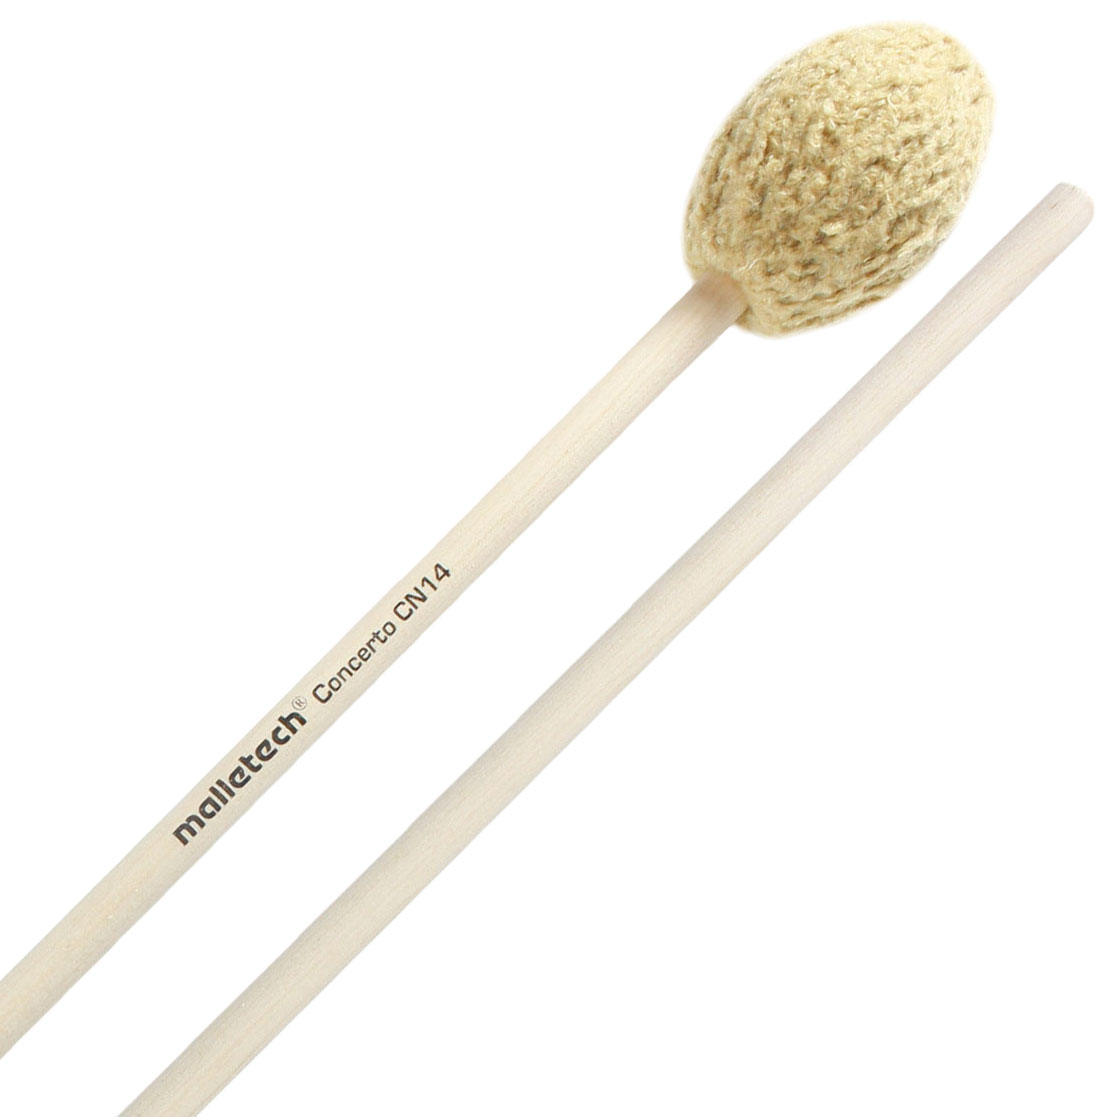 Malletech Concerto Series Medium Hard Marimba Mallets with Birch Handles